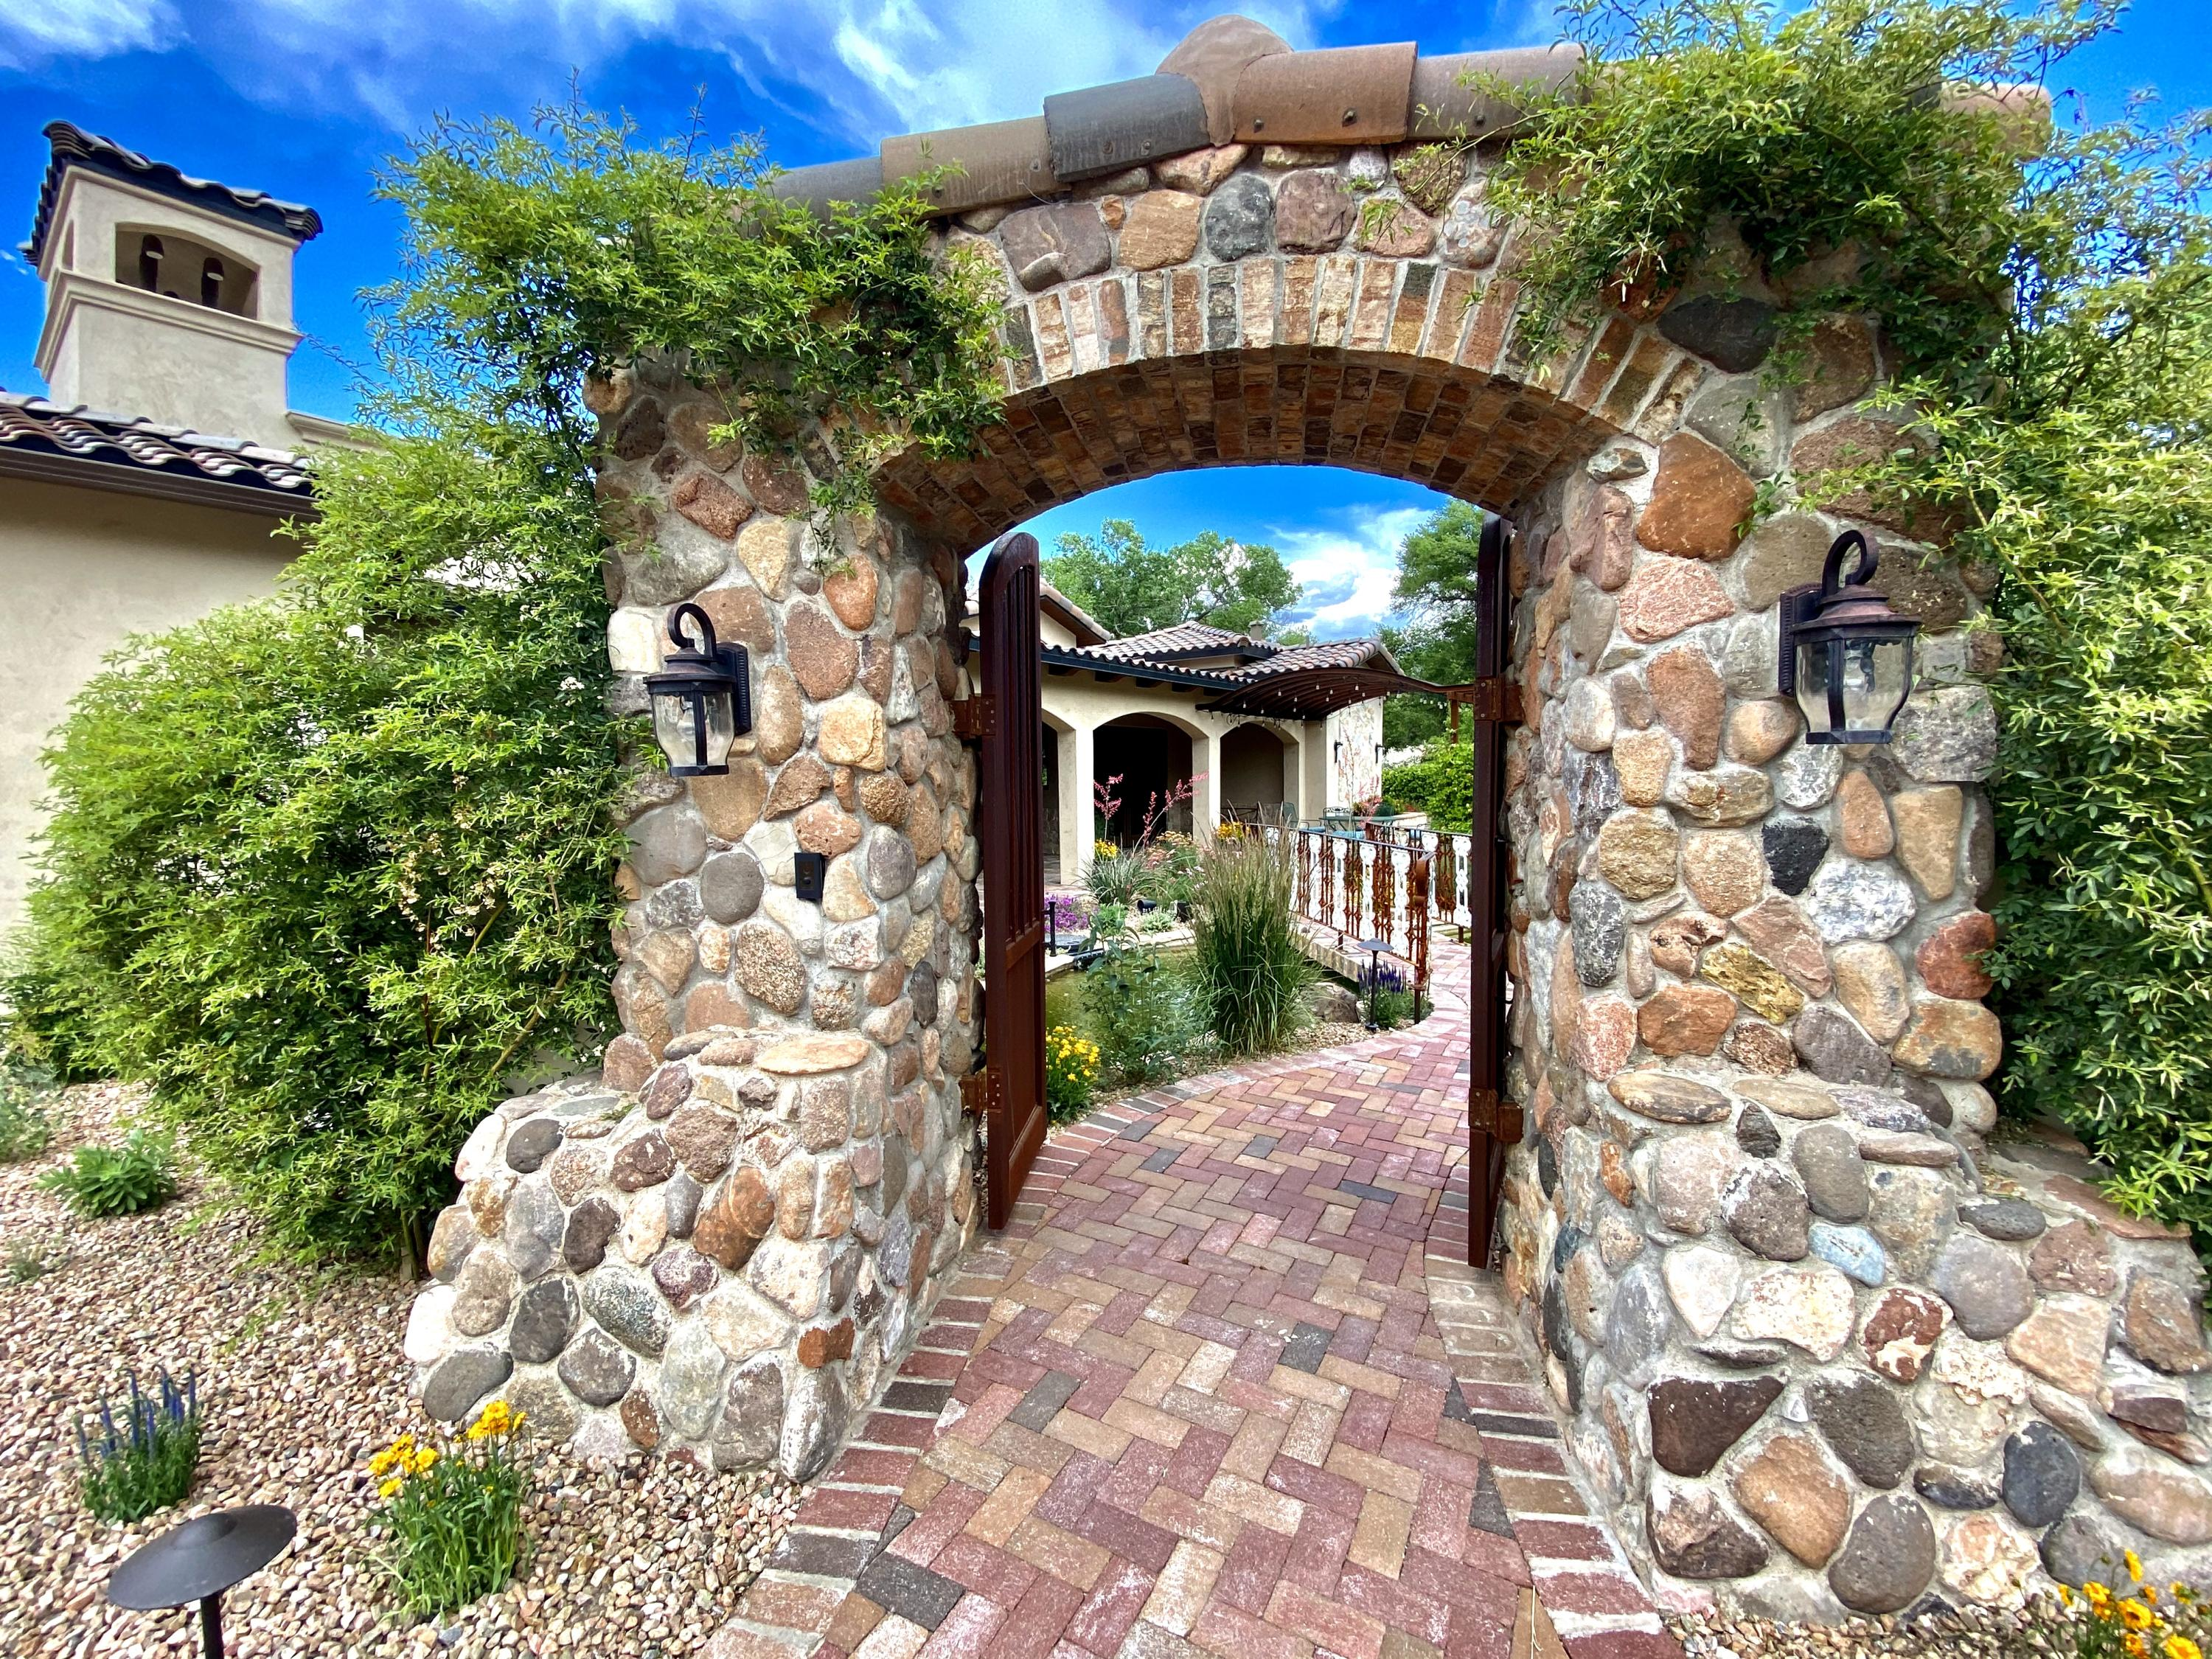 Experience tranquility...and retreat to your own peacefully private oasis nestled in Albuquerque's beautiful North Valley!  This Award-Winning Mediterranean European-style Green Built ''Gold Certified'' home is loaded with amenities and high-end custom finishes.  Enter through the gated stone archway into a private paradise with large pond, rock waterfall, lush landscaping, a bridge that leads to exposed brick patios and outdoor dining under the open air trellis.  A masterful blend of European flare with rustic, contemporary and industrial elements are combined with a soothing color palette and an intriguing blend of finishes and materials, including imported French limestone and Indian walnut wood flooring throughout, stone arches, and East-facing European Farmhouse kitchen with custom